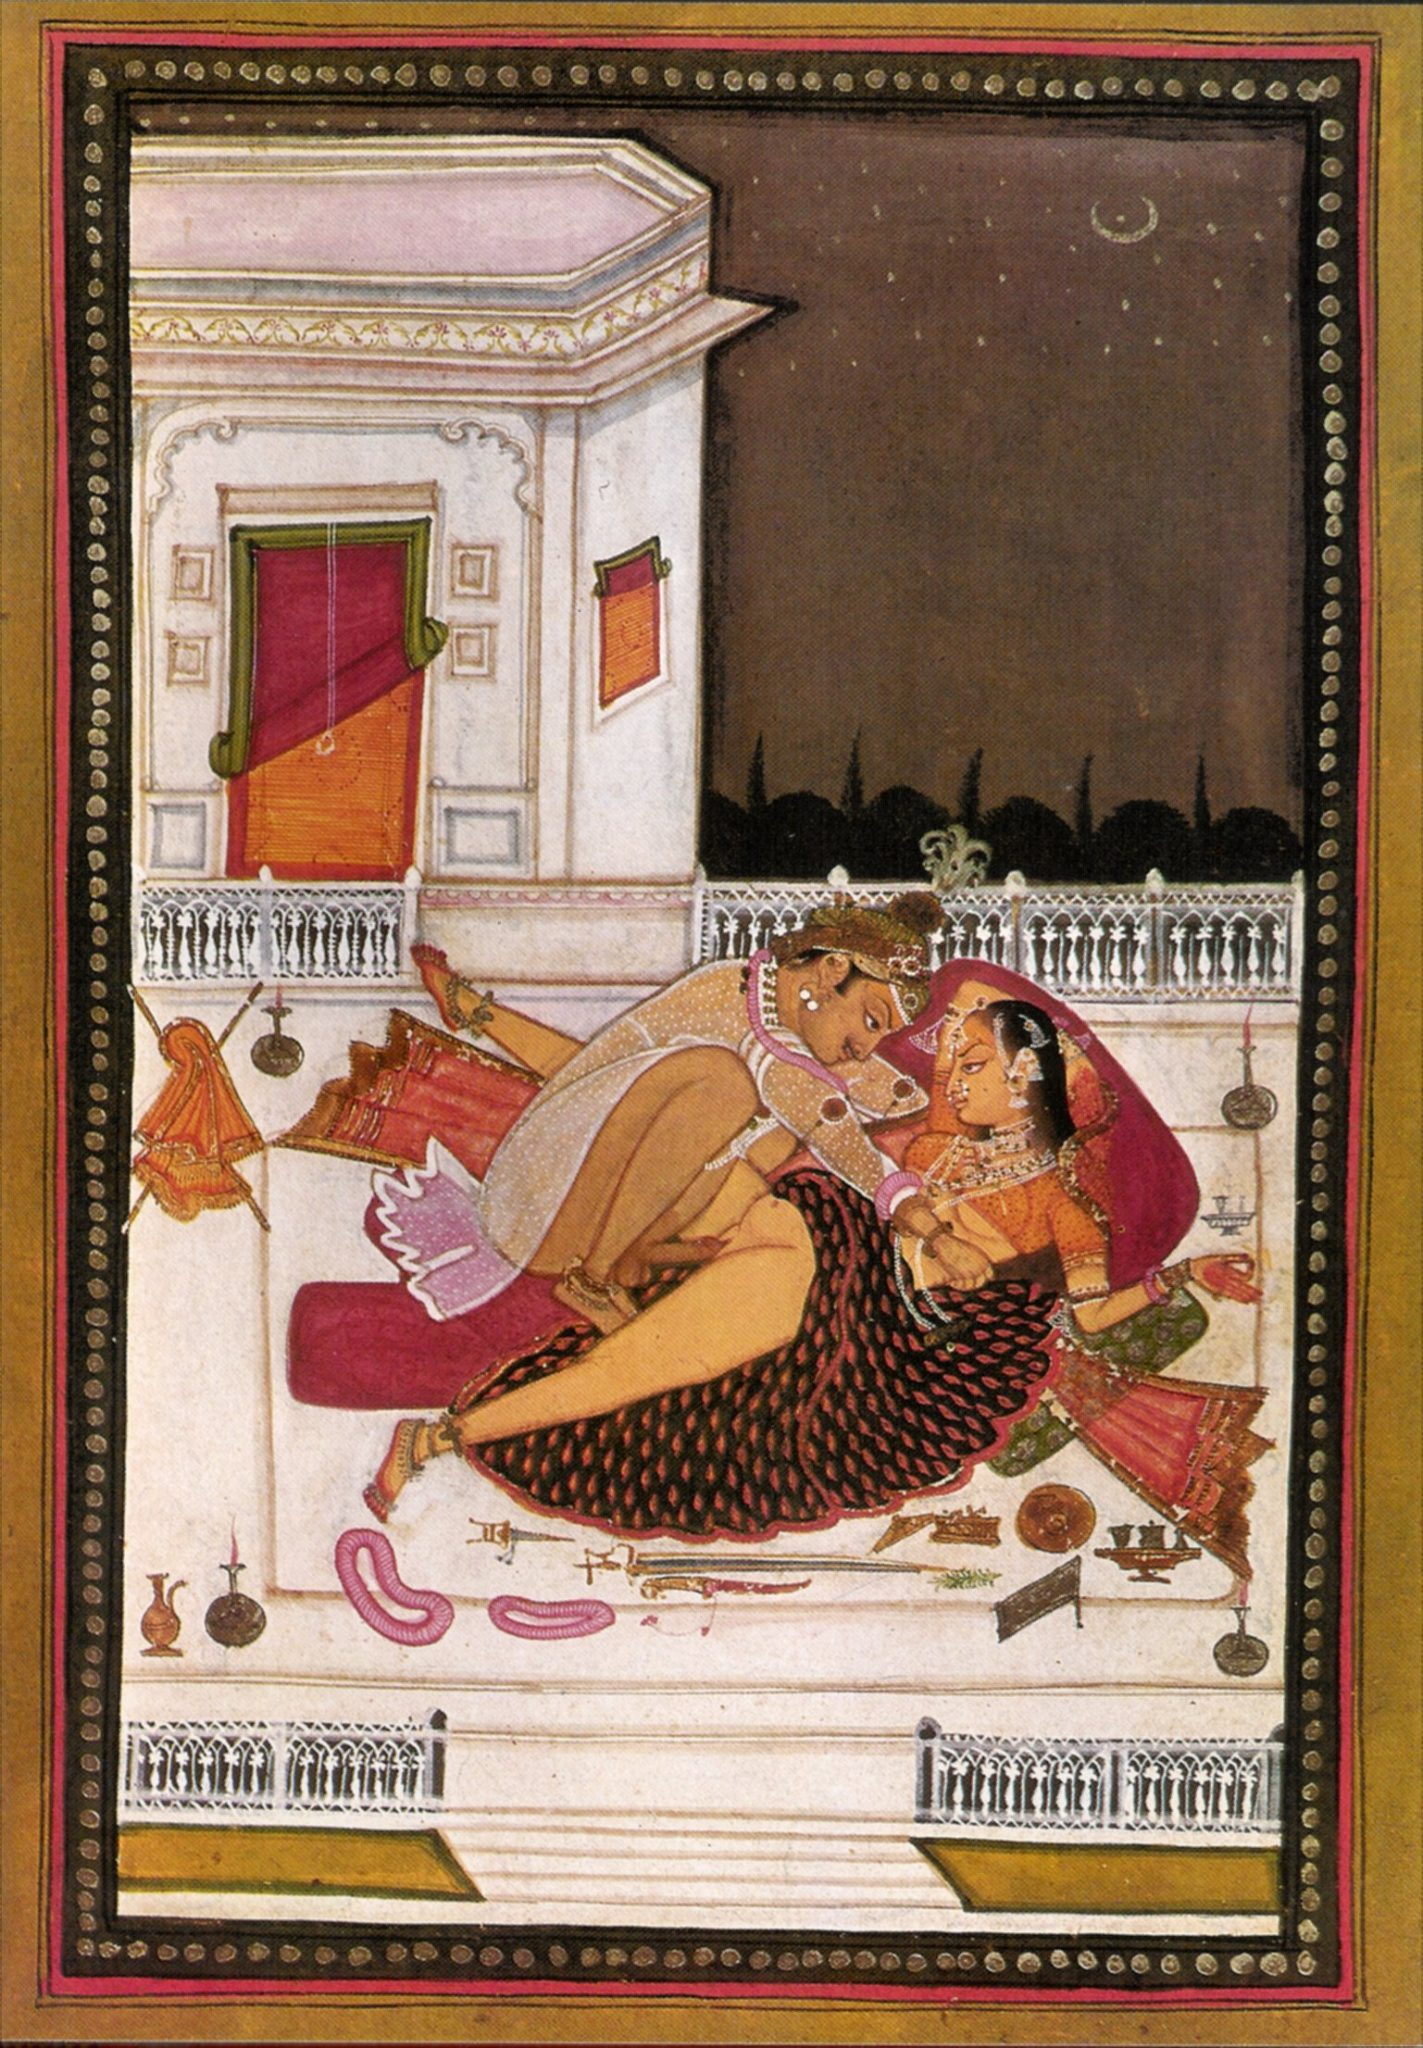 Kamasutra Picture  kamasutra is art of making love ancient manual on sex